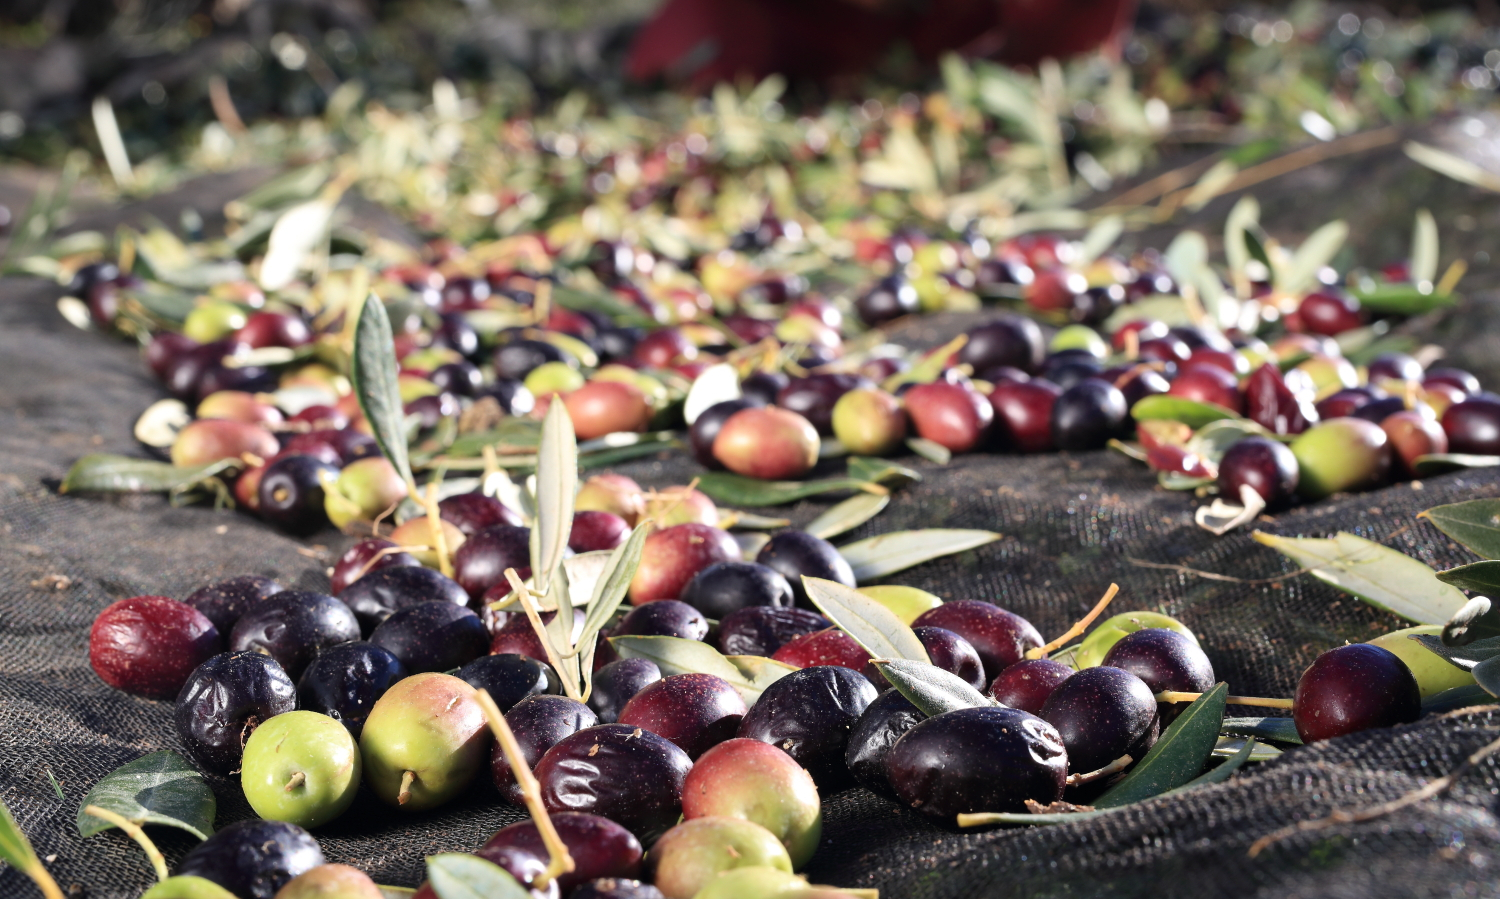 Fresh olives representing low olive oil acidity, Bertolli